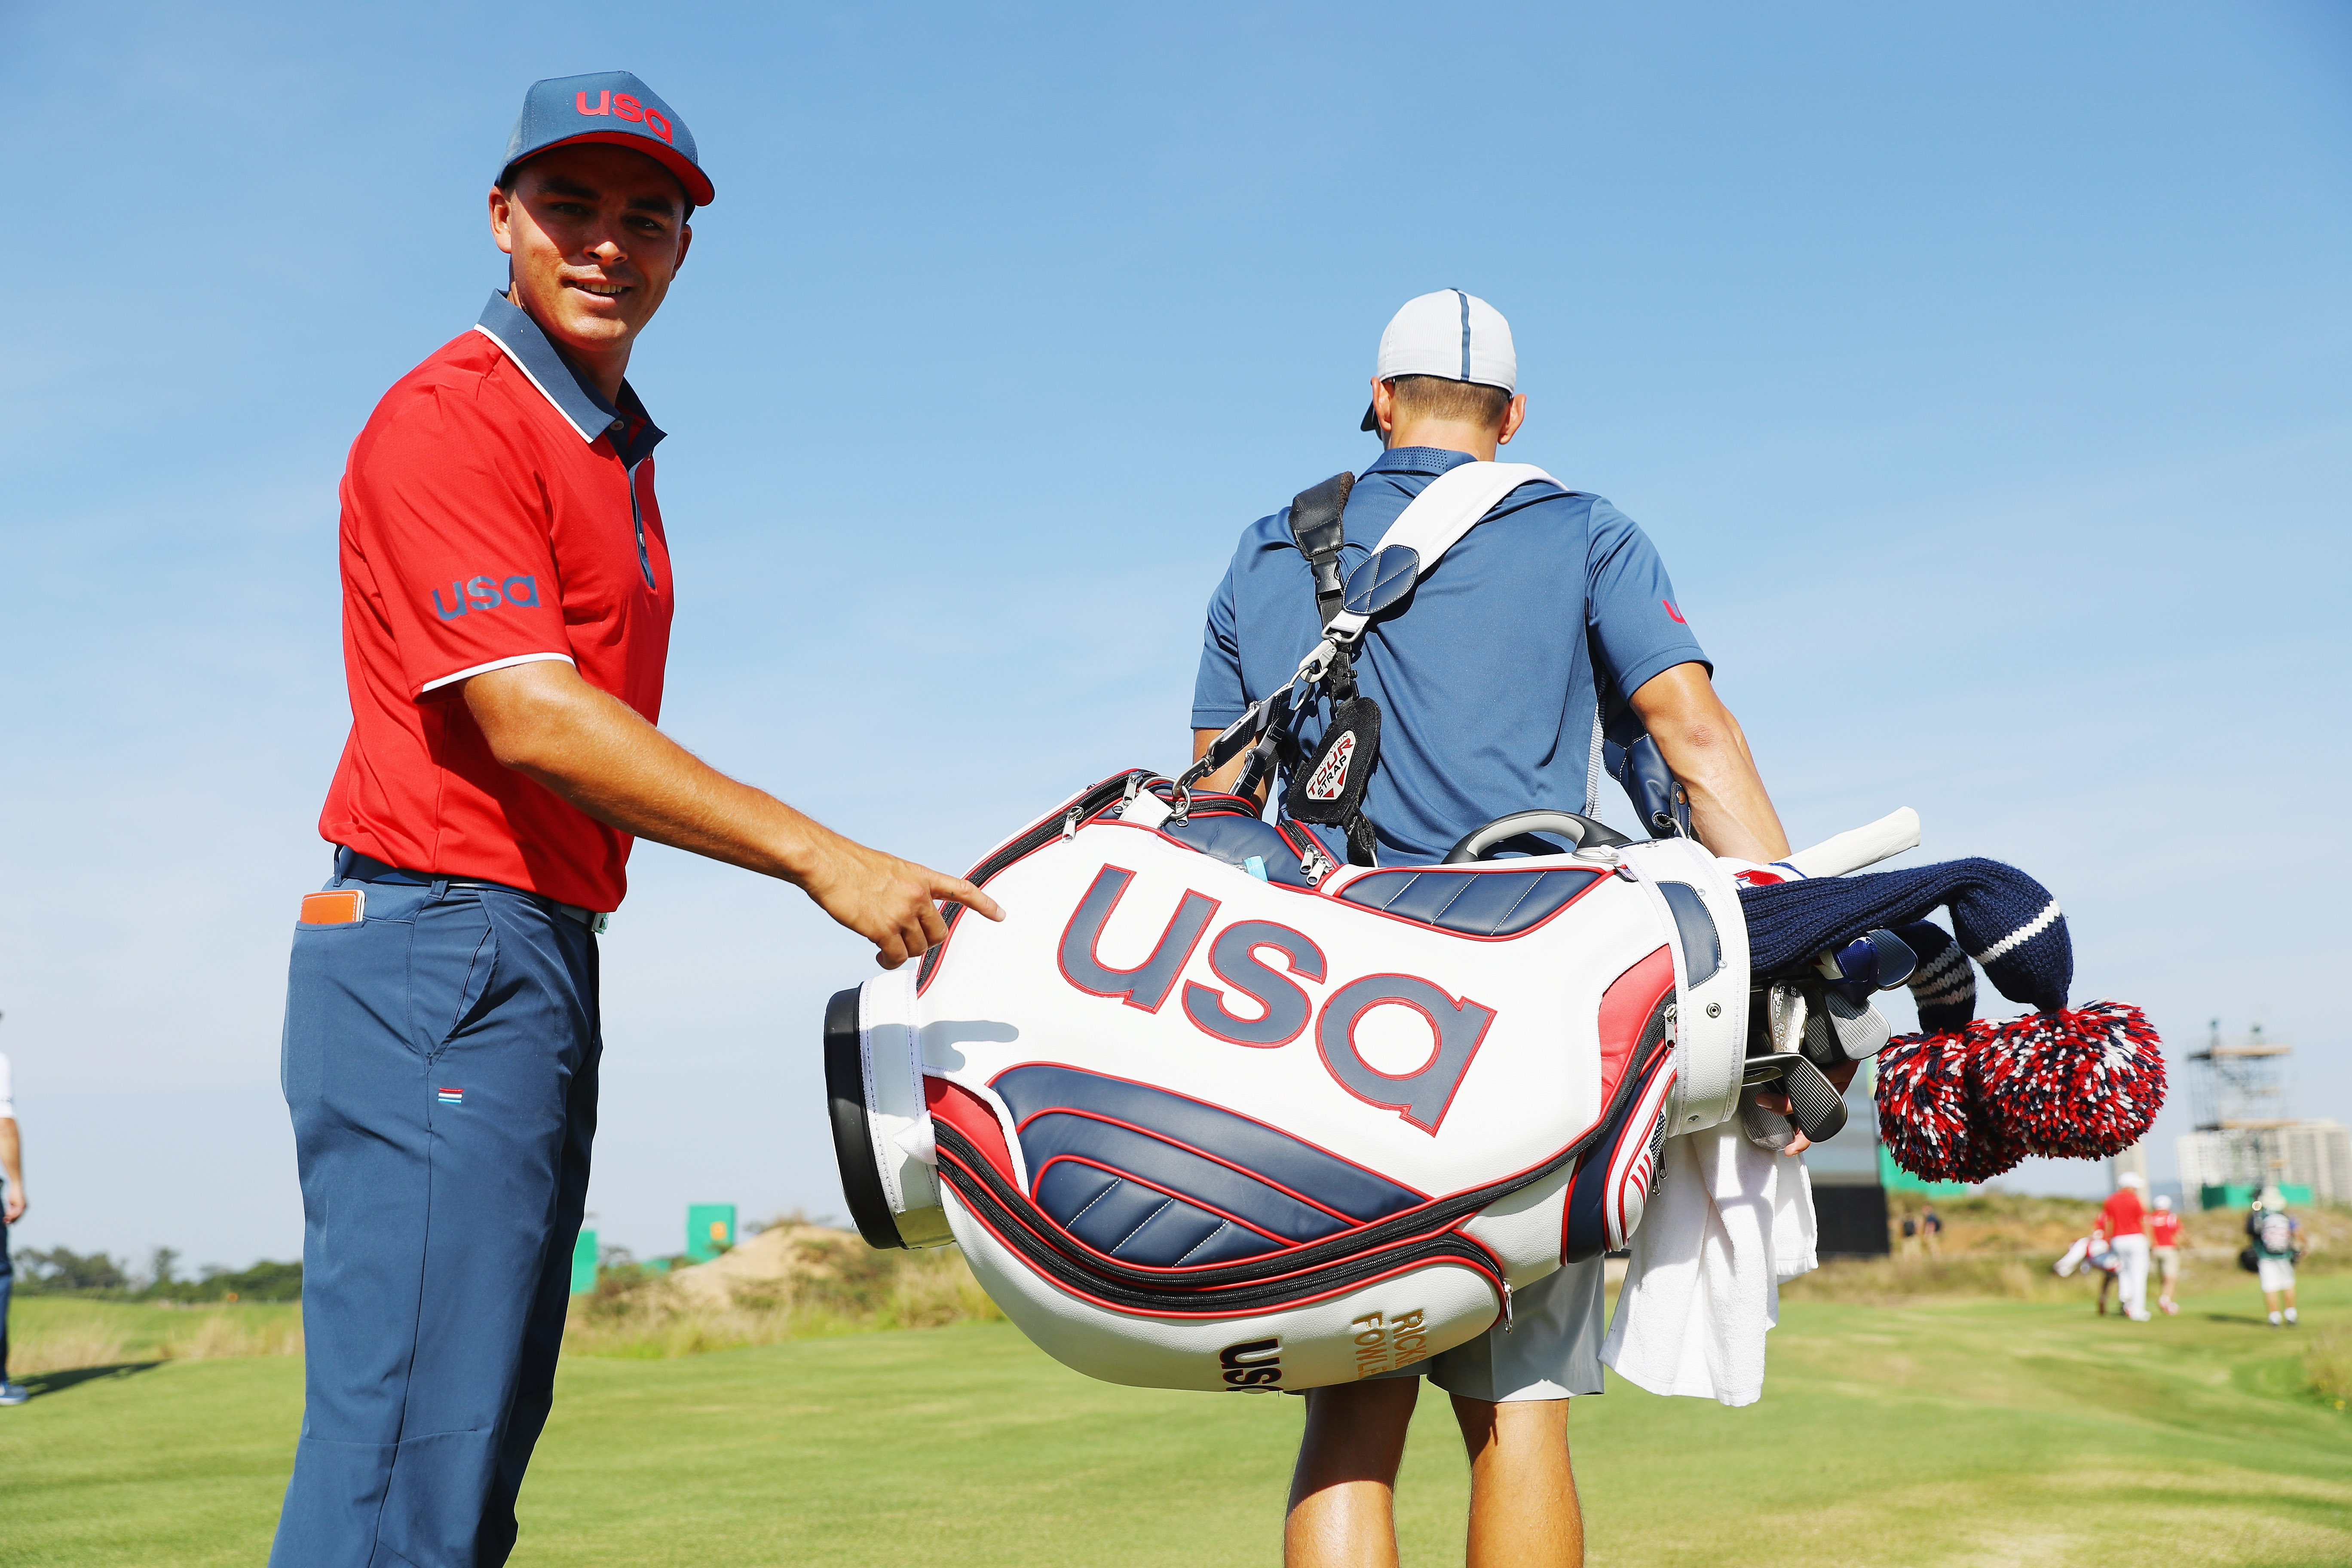 Rio Olympics 2016 golf tee times: Pairings for rounds 1 and 2